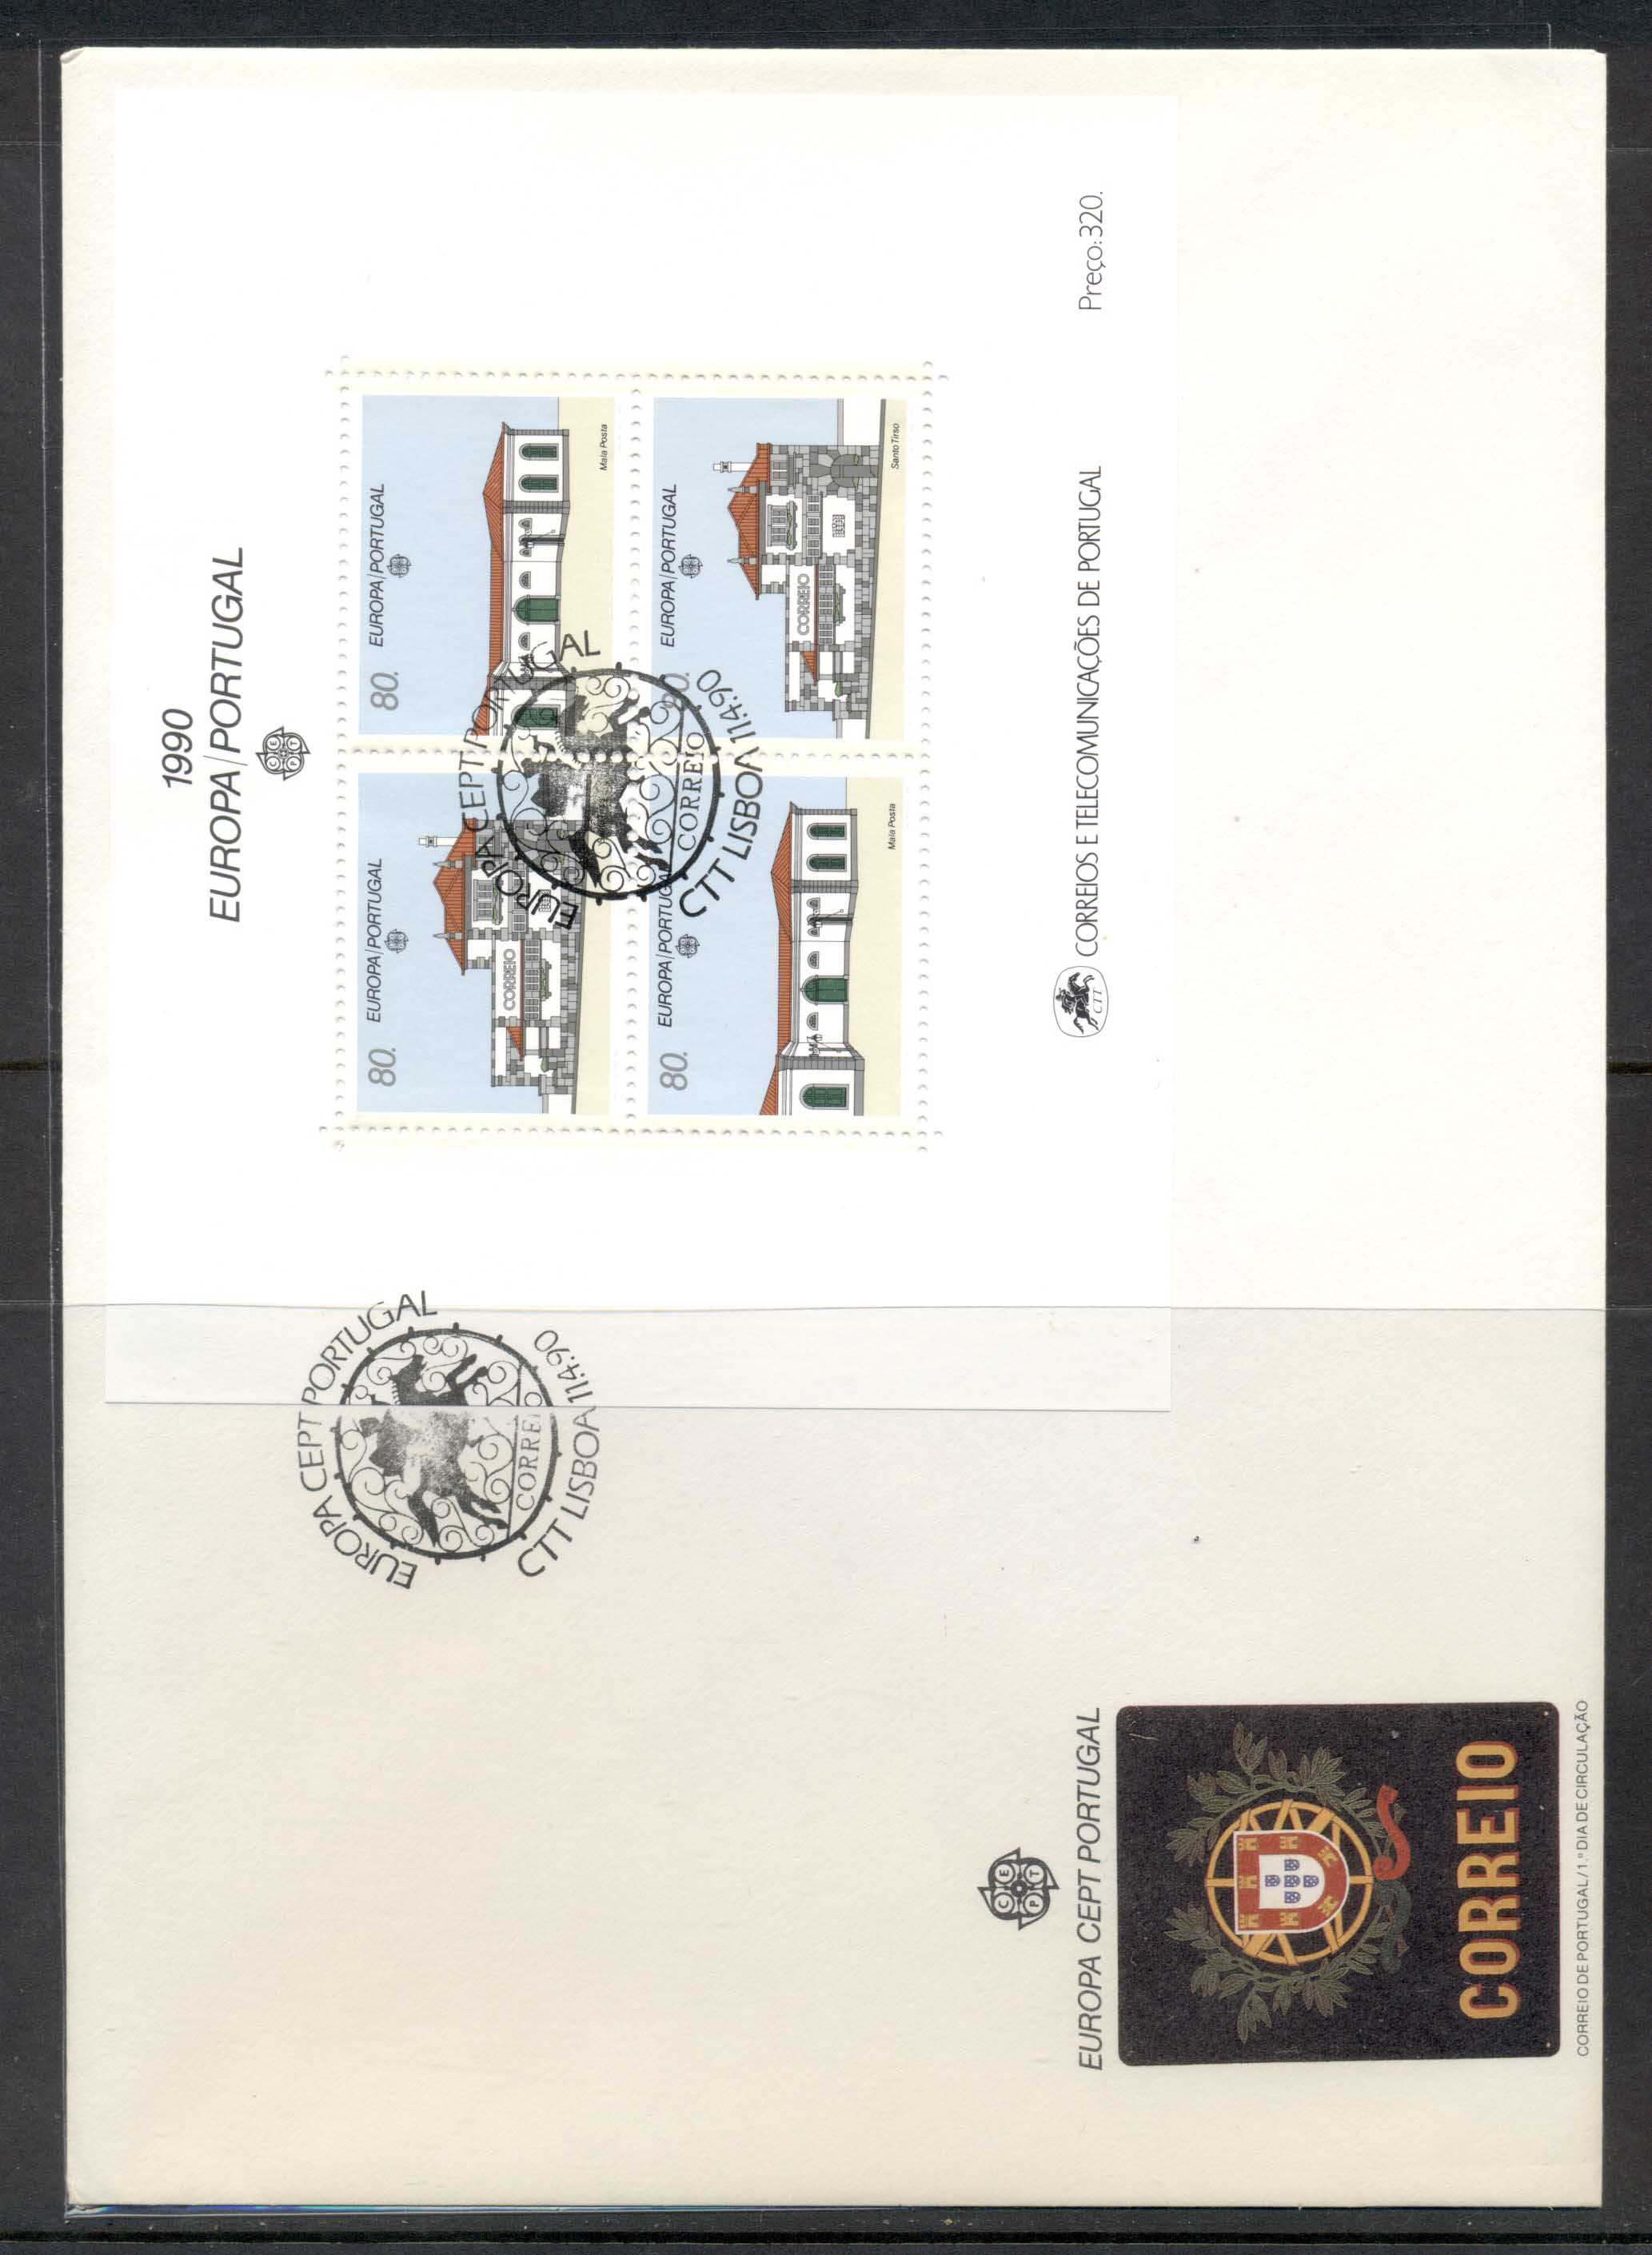 Portugal 1990 Europa Post Offices XLMS FDC